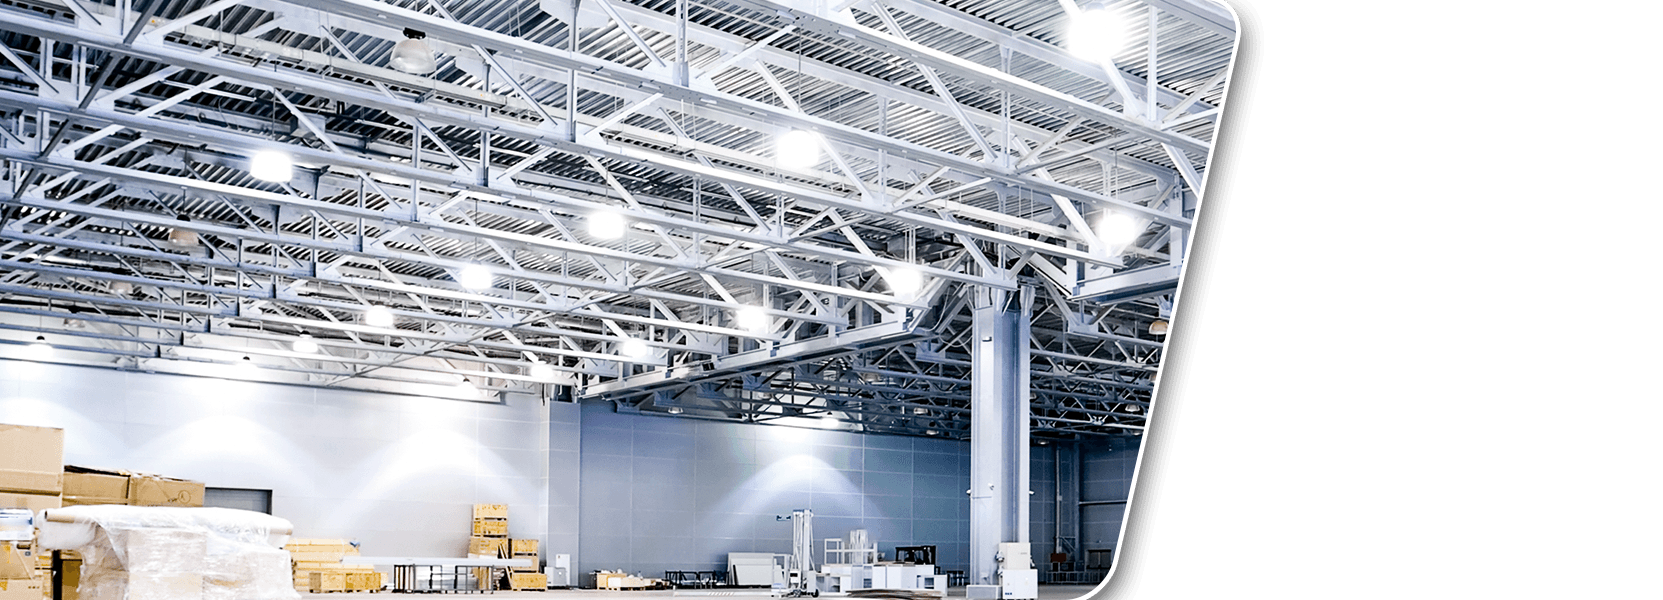 Illuminazione led industriale